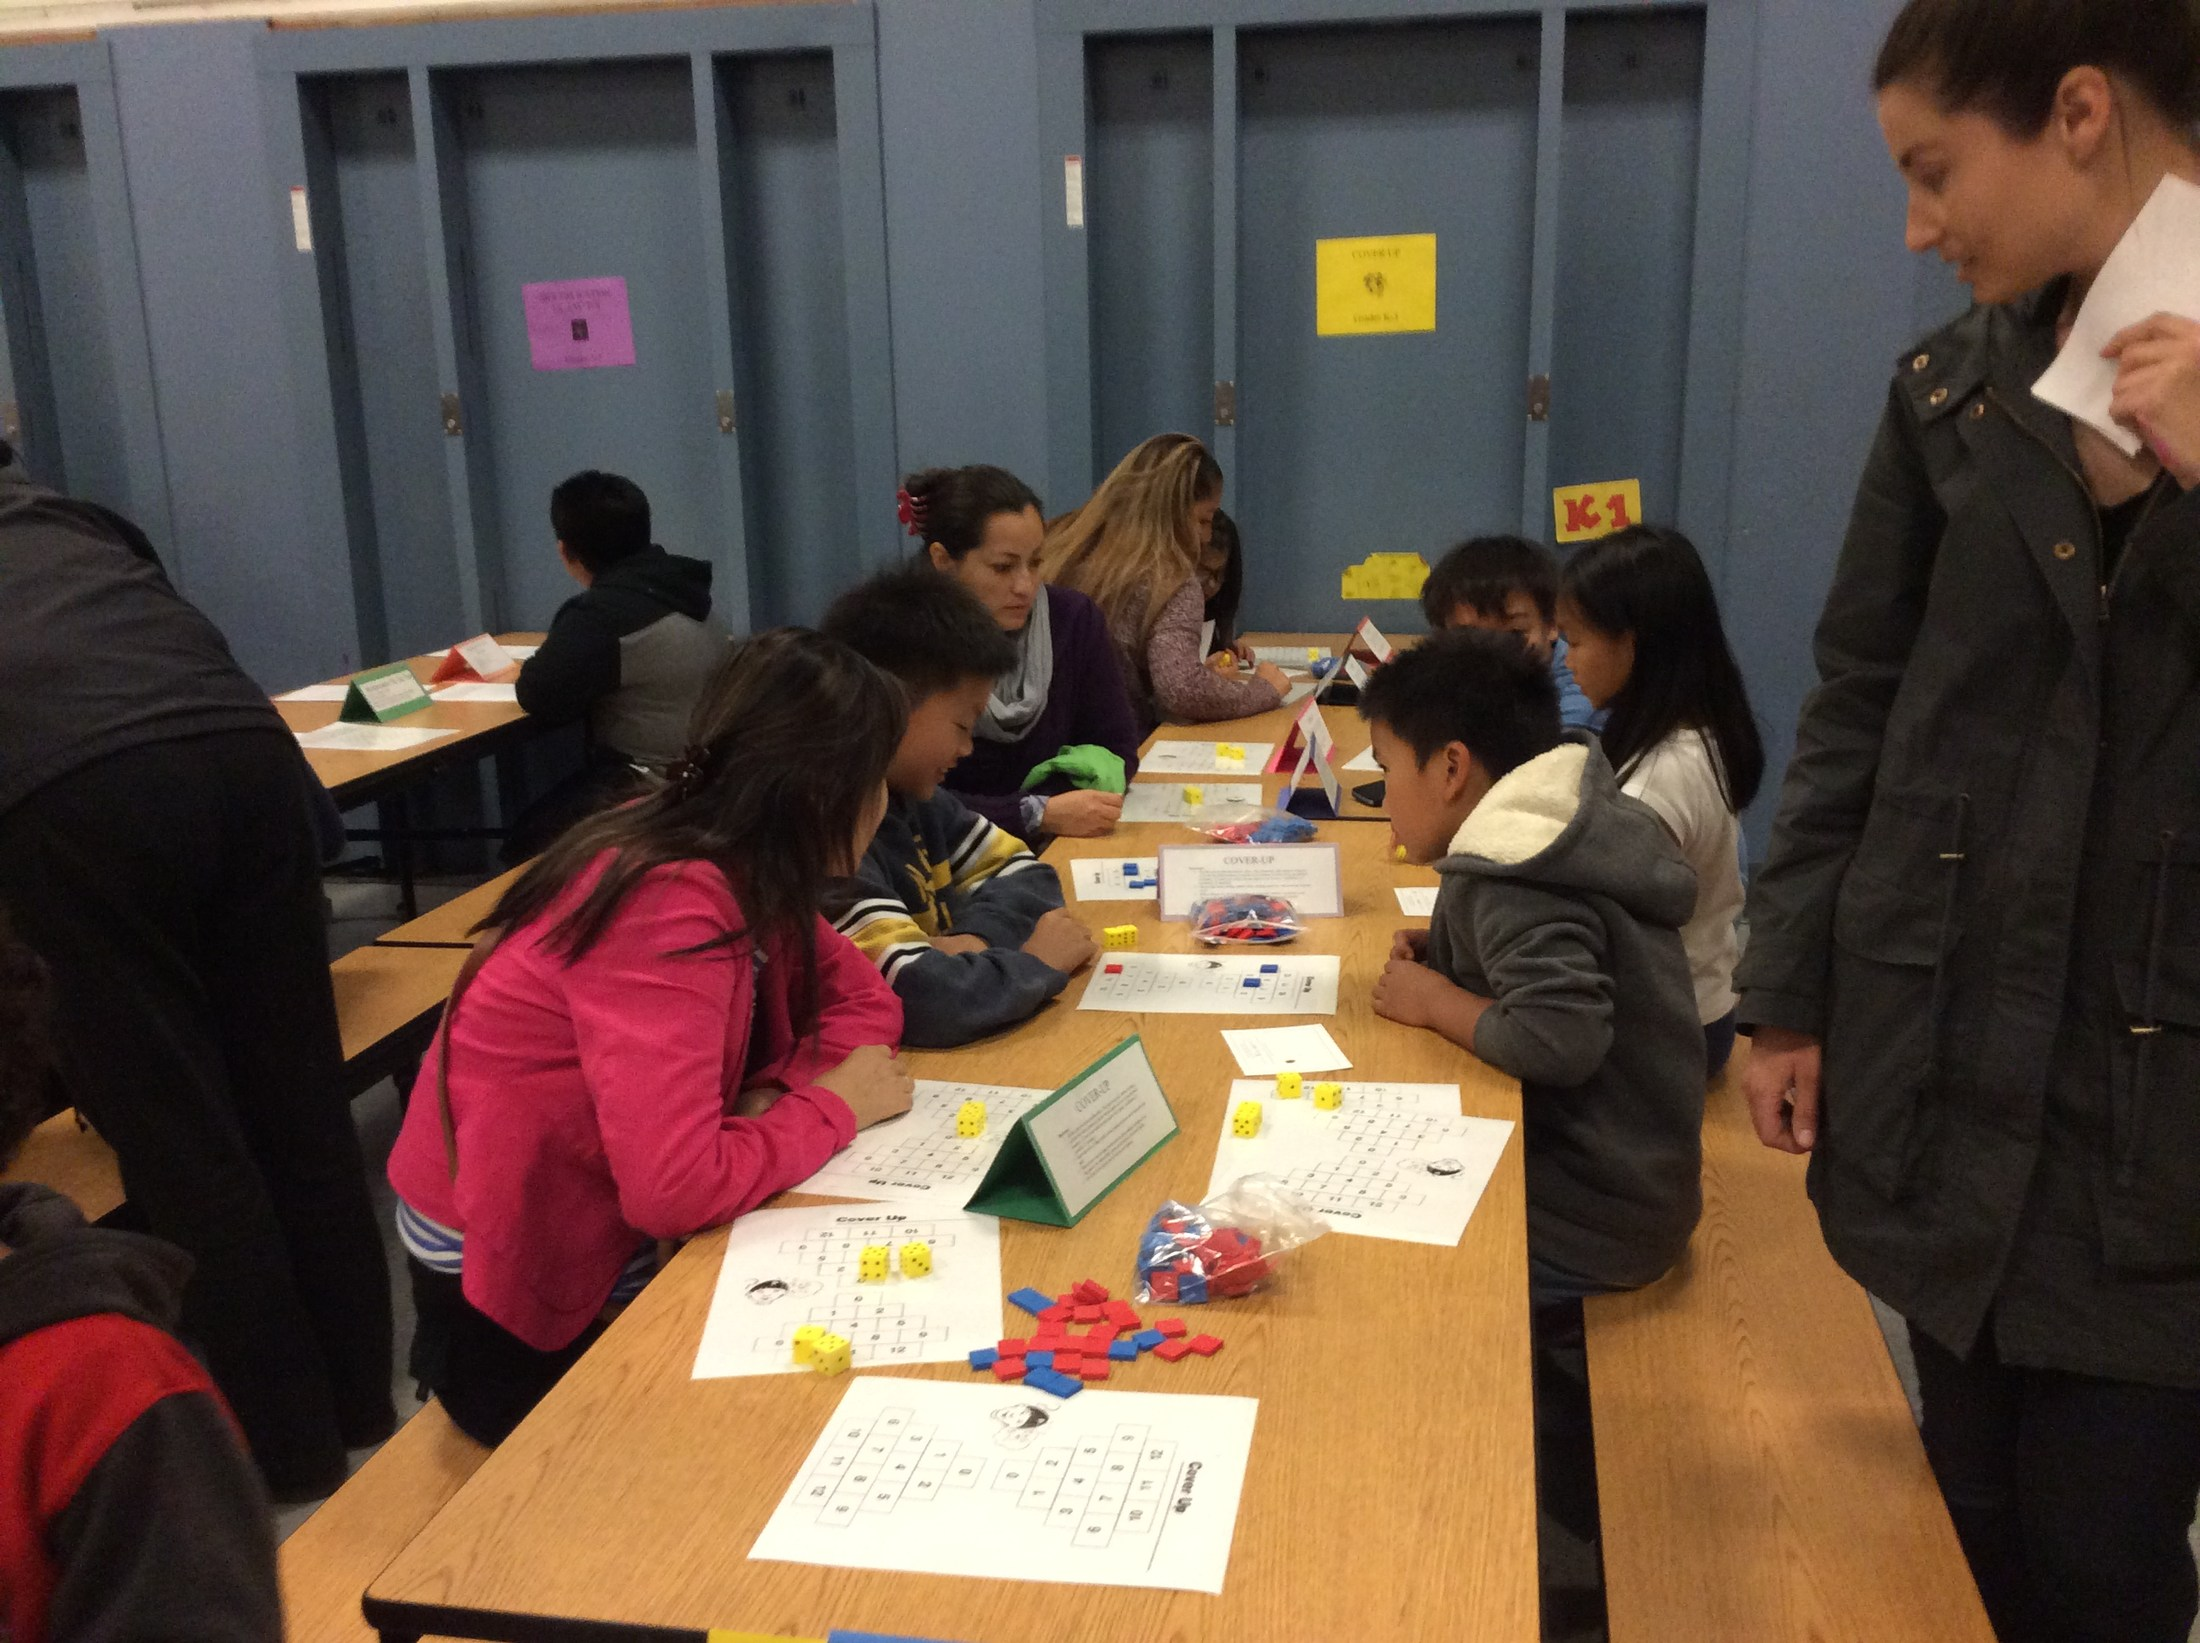 Working together to solve math problems at the family math night.